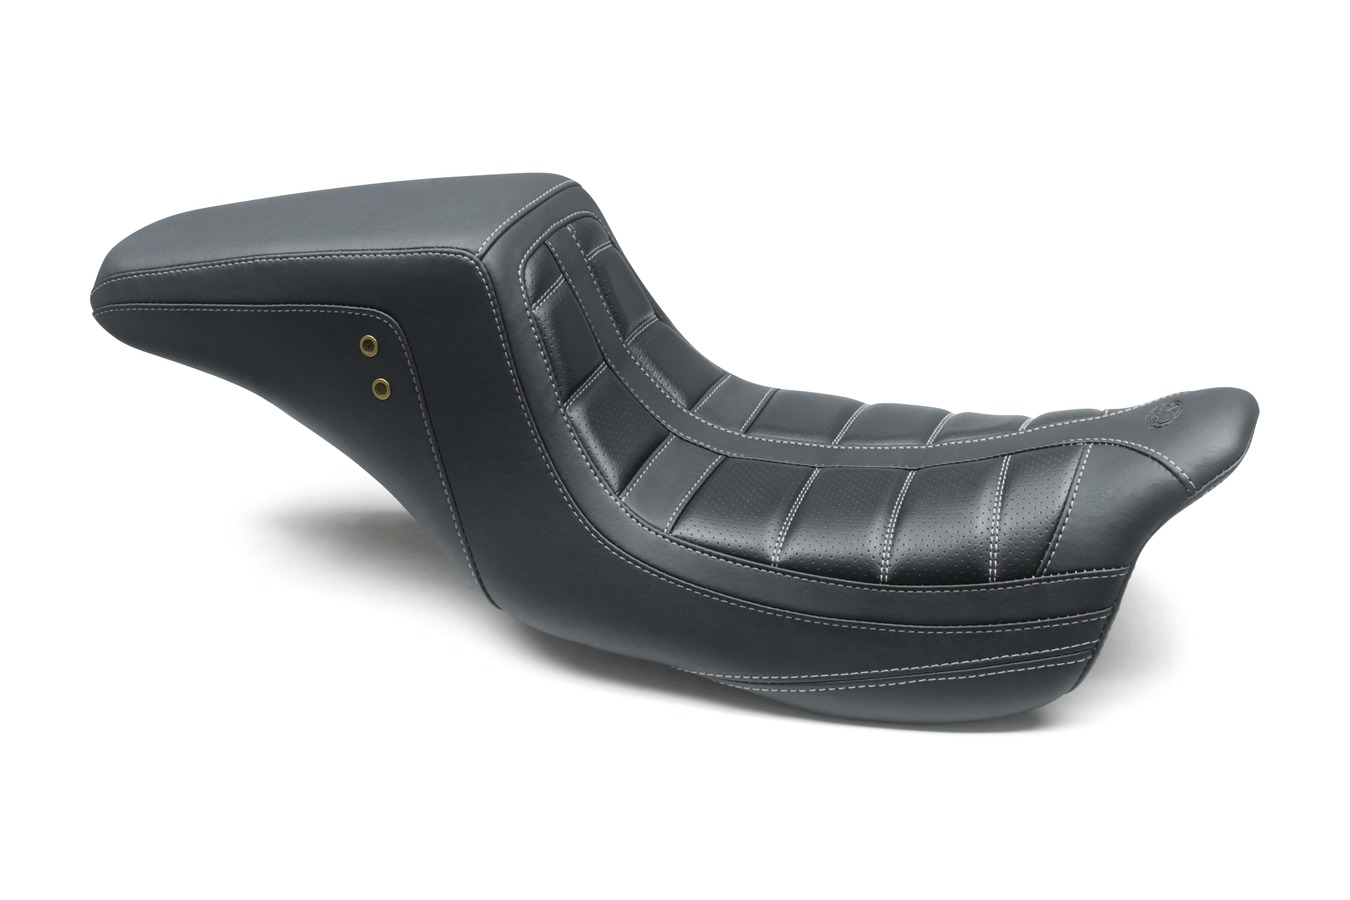 Squareback One-Piece Seat with Gunmetal Grey Stitching, Tuck-&-Roll, Black